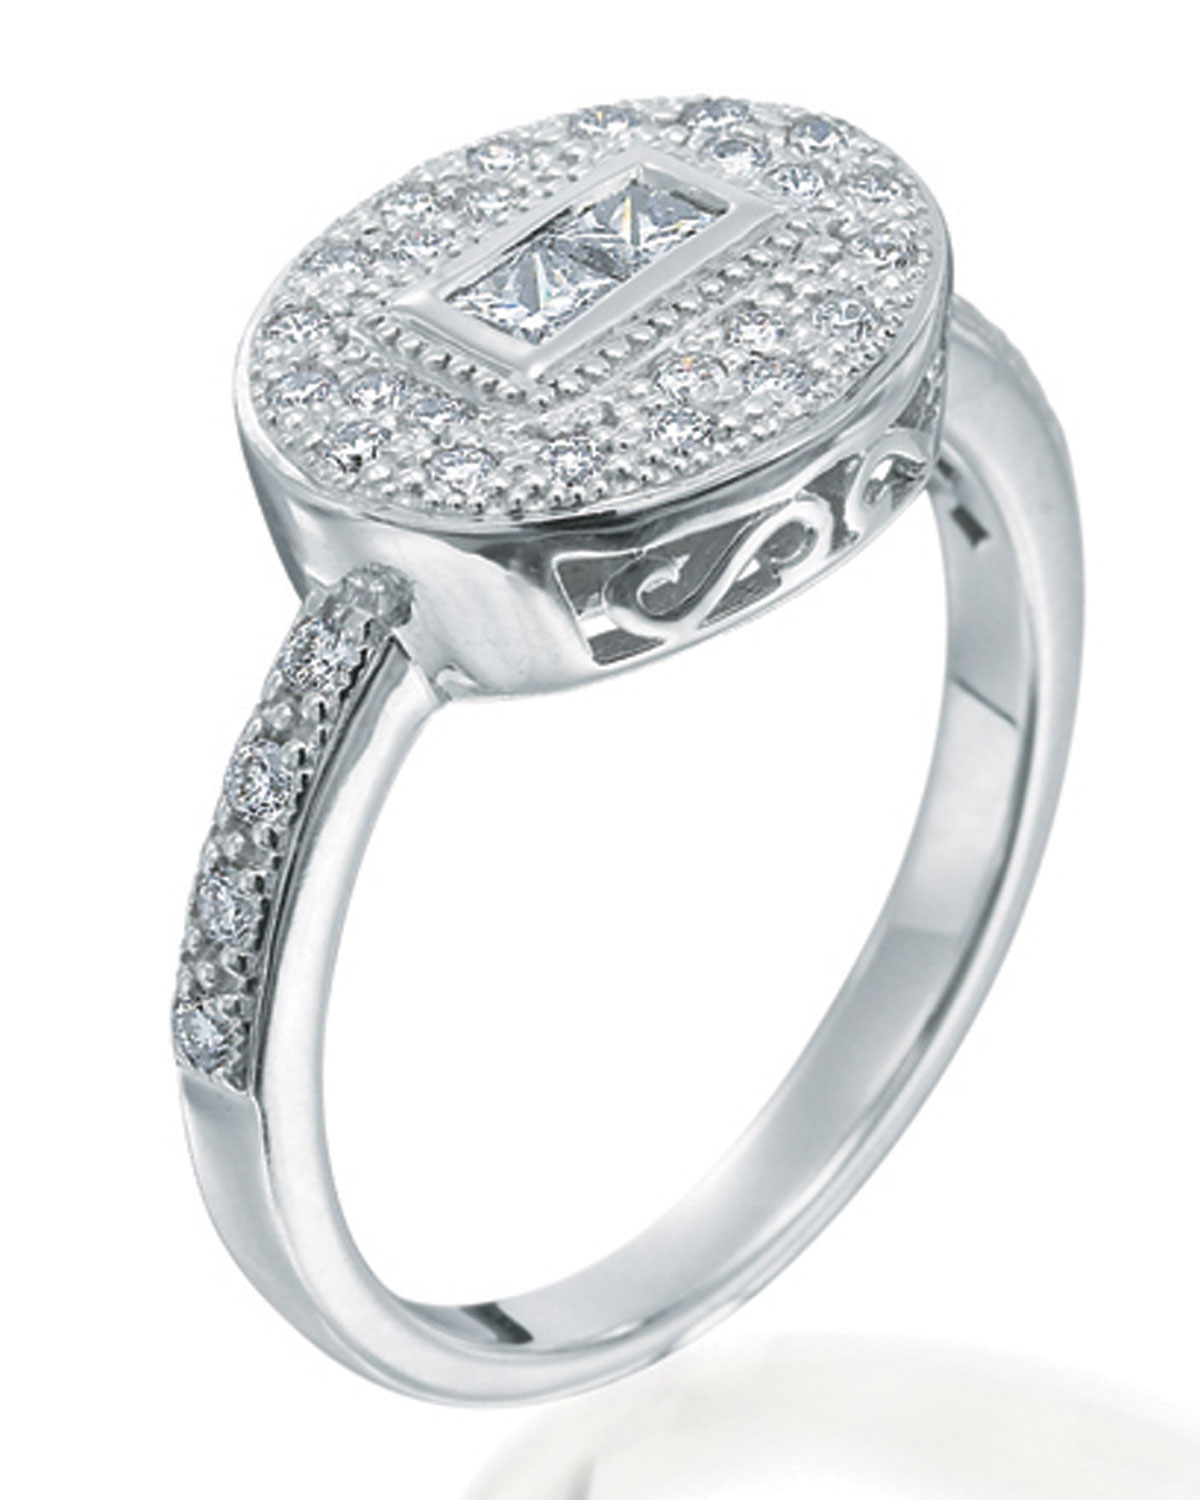 Lyst - Charriol Diamond Pave Oval Ring Size 7 in Metallic